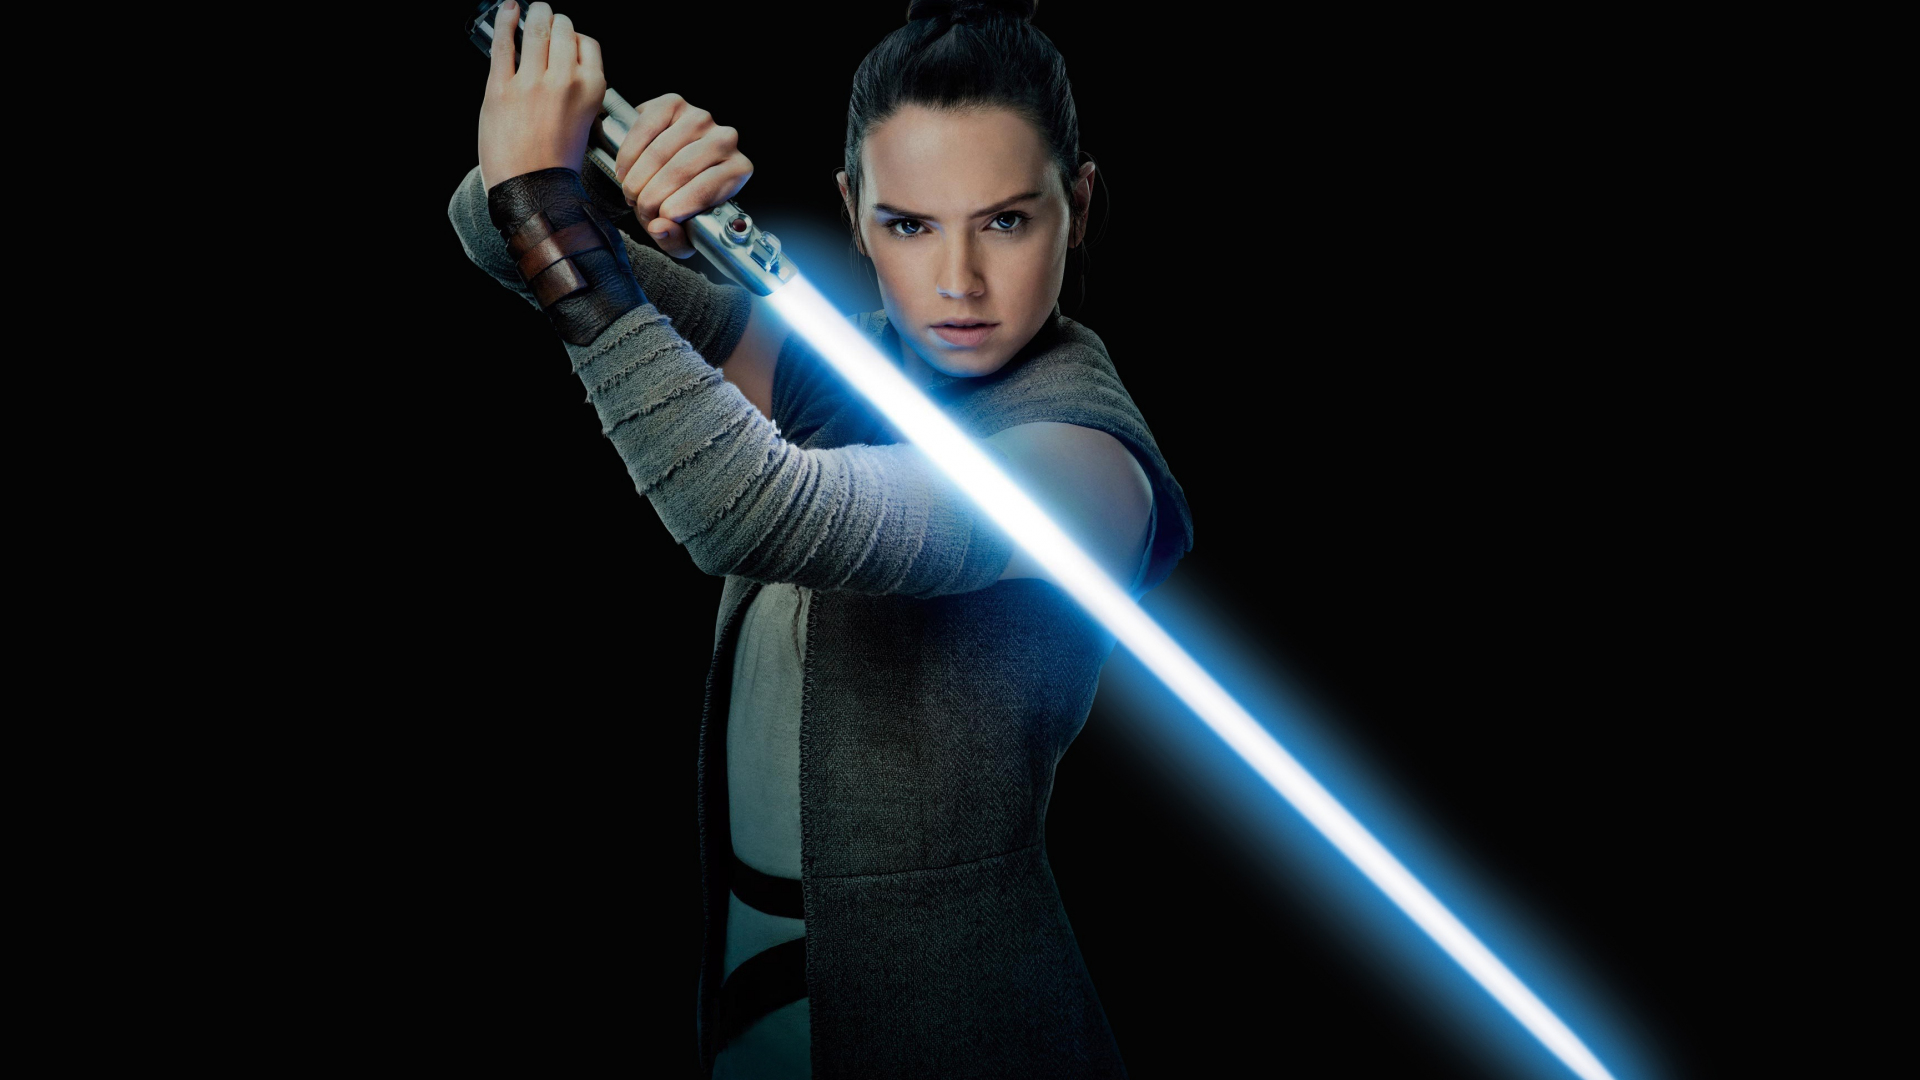 Download 1920x1080 Wallpaper Daisy Ridley Rey Star Wars The